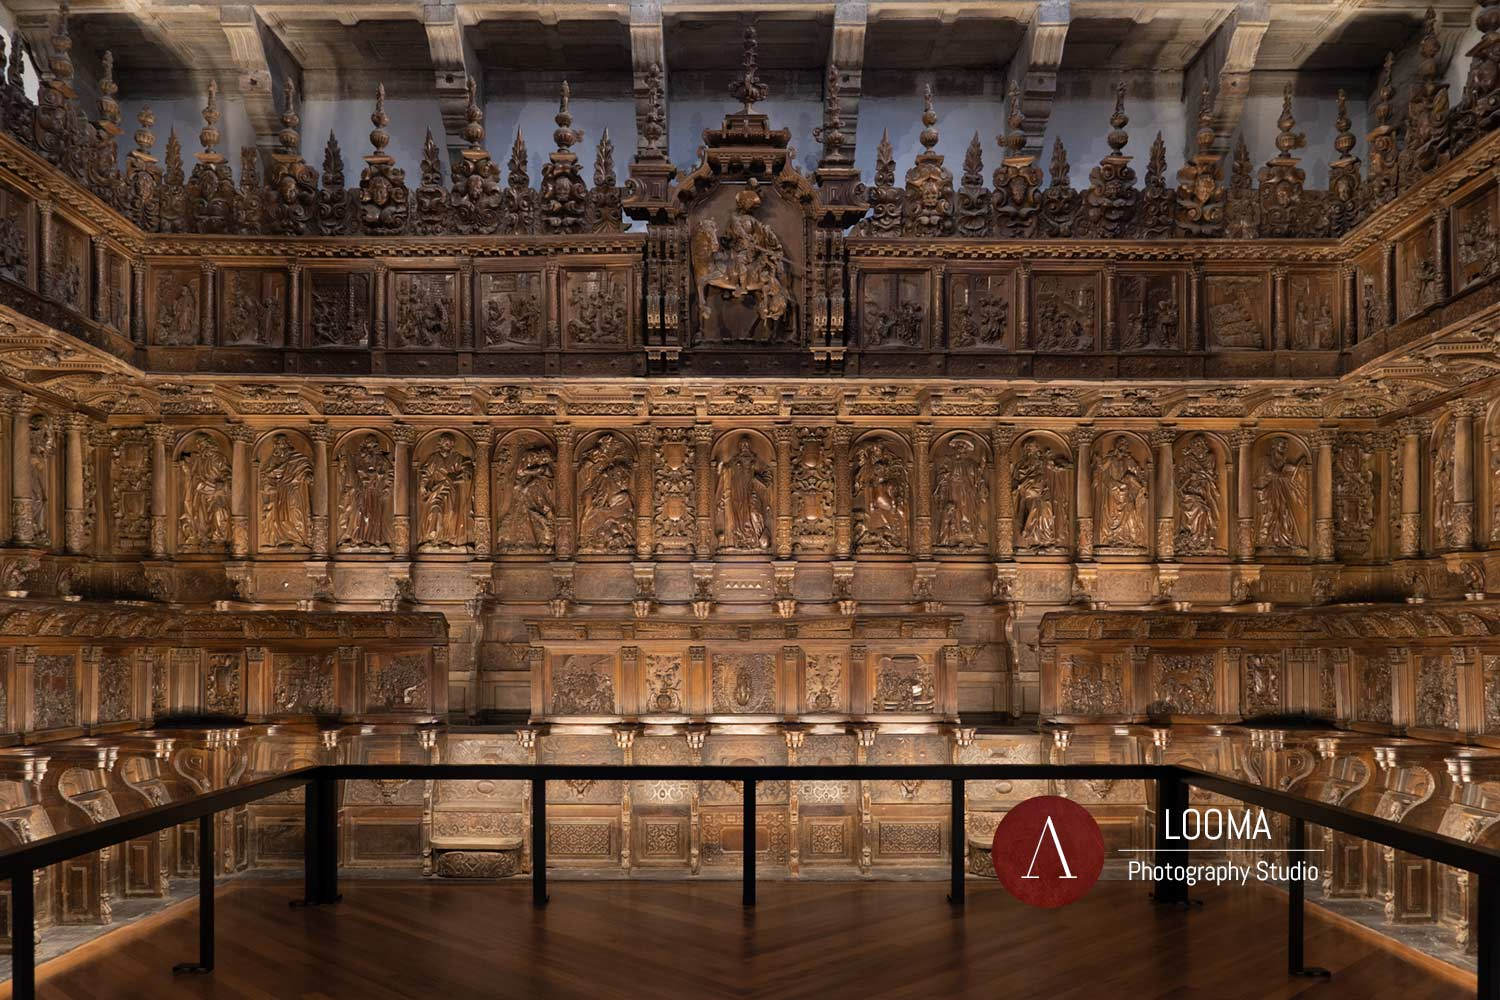 LED Lightining for the artistic cultural heritage